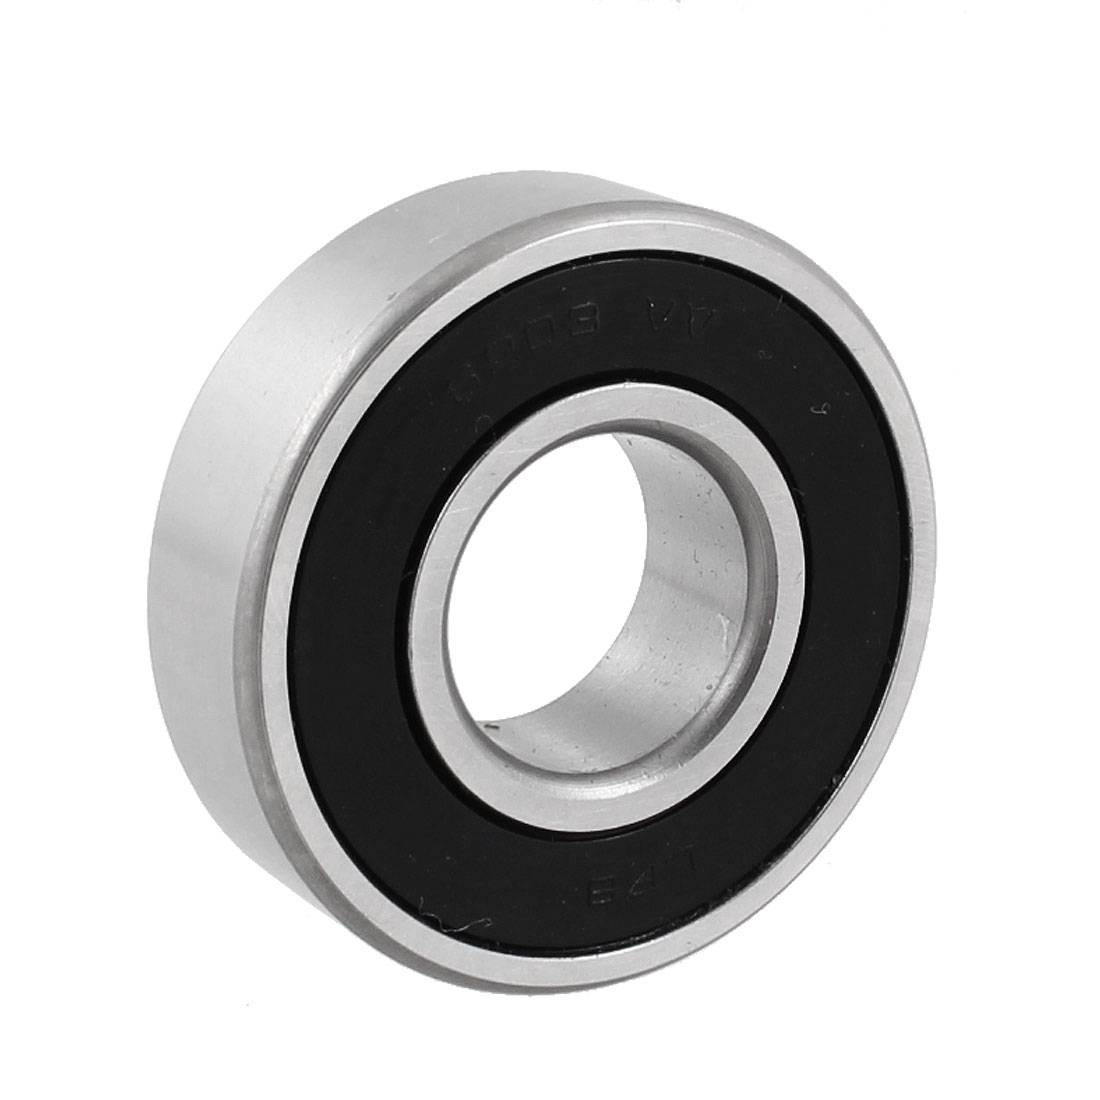 40mm x 17mm x 12mm Shielded Deep Groove Ball Bearings 6203VV